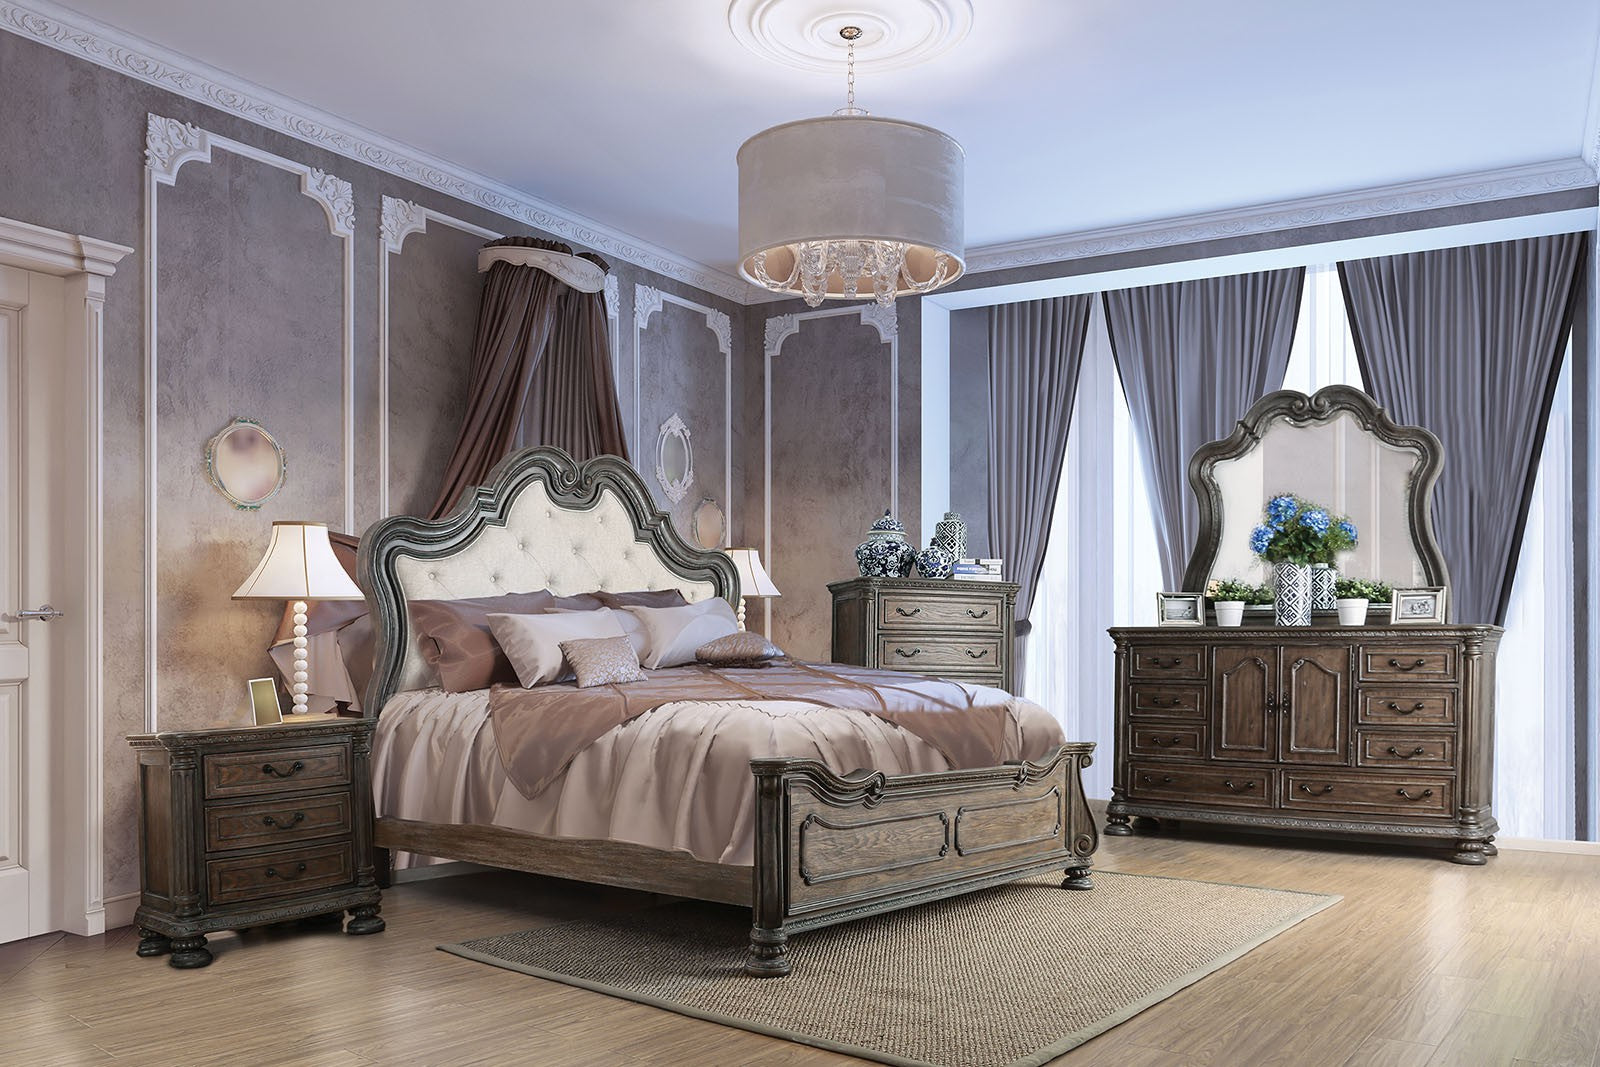 ARIADNE / QUEEN BEDROOM SET